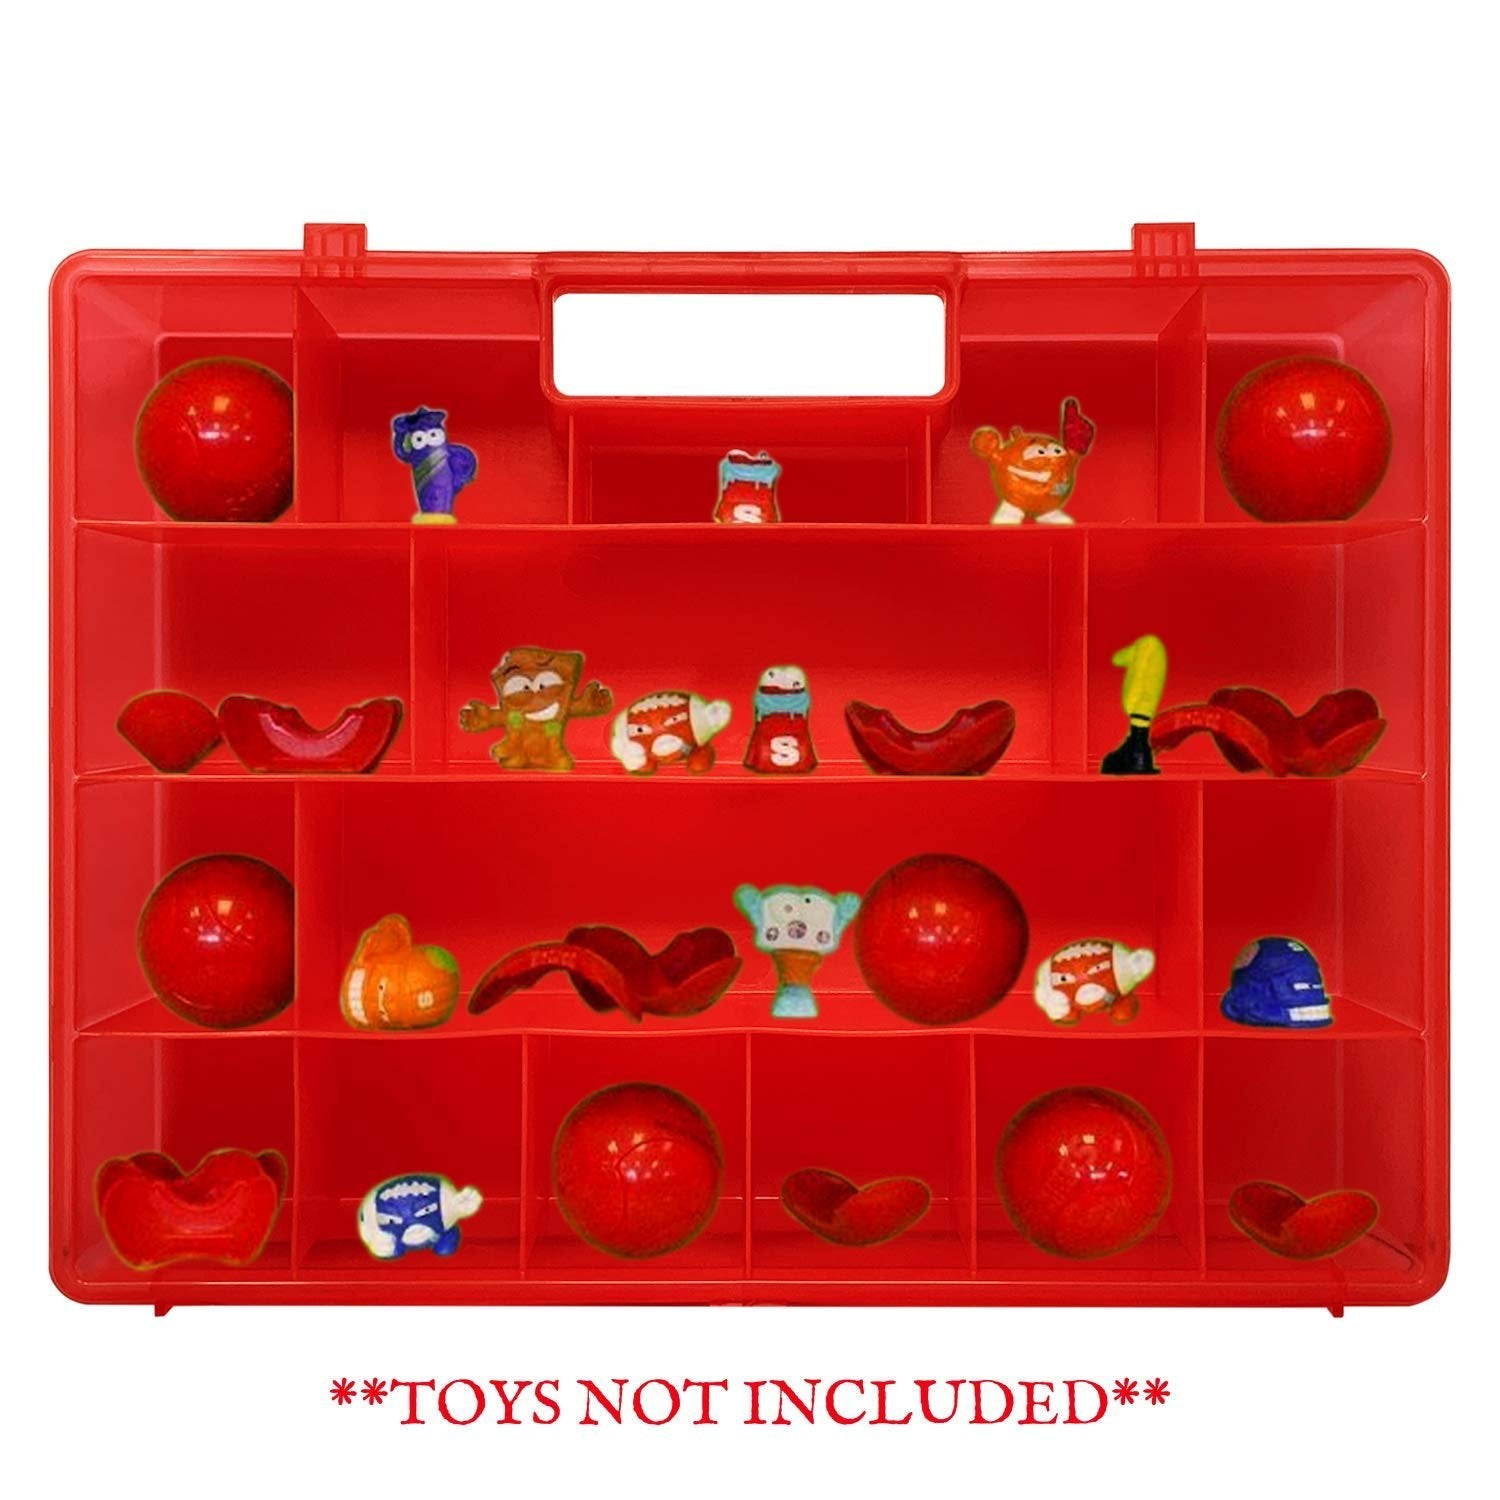 Life Made Better, Red Portable Display & Protector Storage Box with Solid Cover and Clasps, Works with Zuru Smashers, Toy Accessory Case Made by LMB